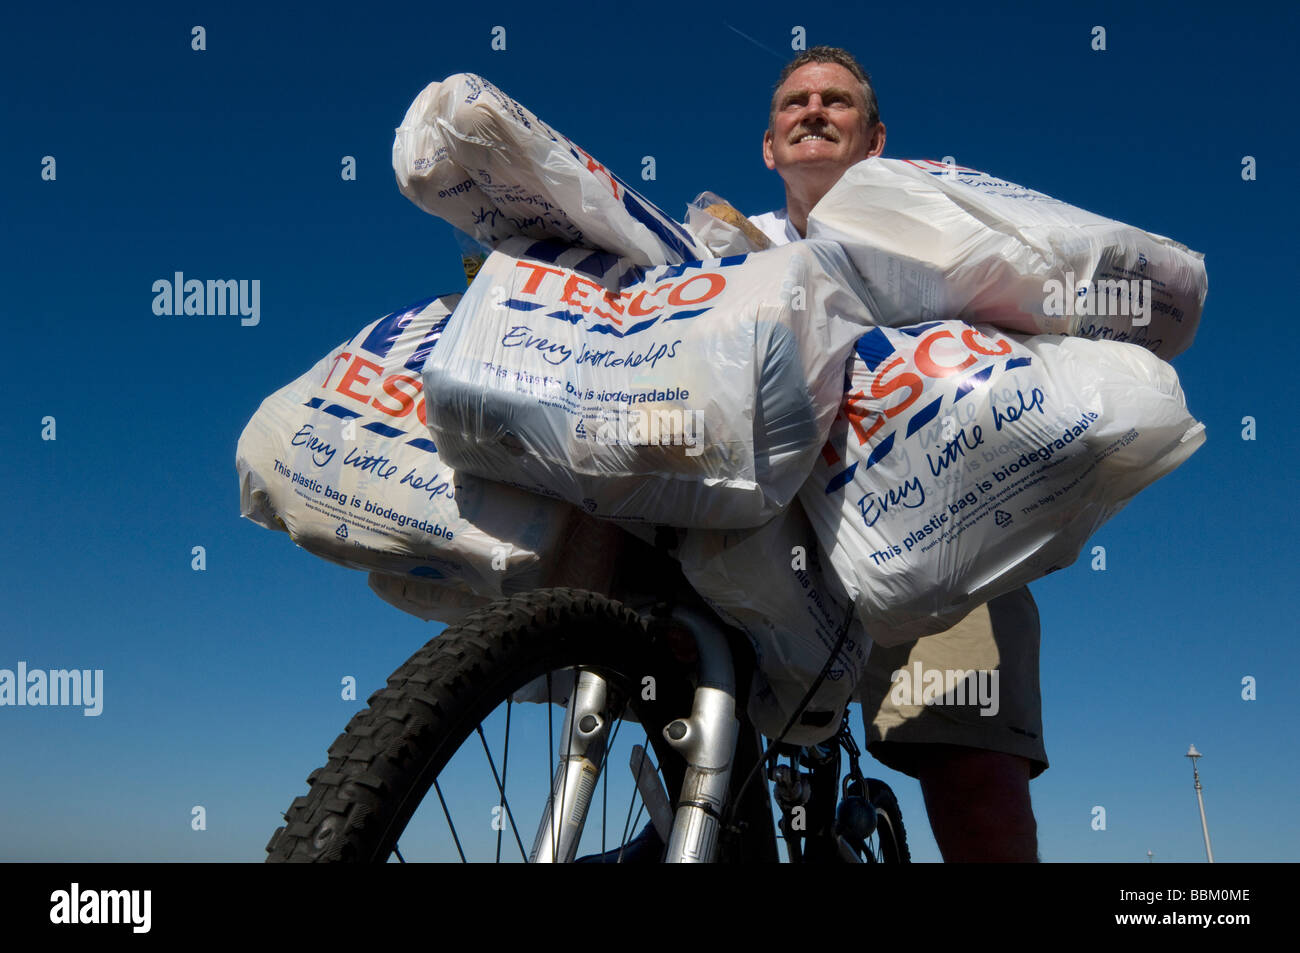 A man coming back from shopping at Tesco on a bike with laden with plastic bags full of groceries. - Stock Image